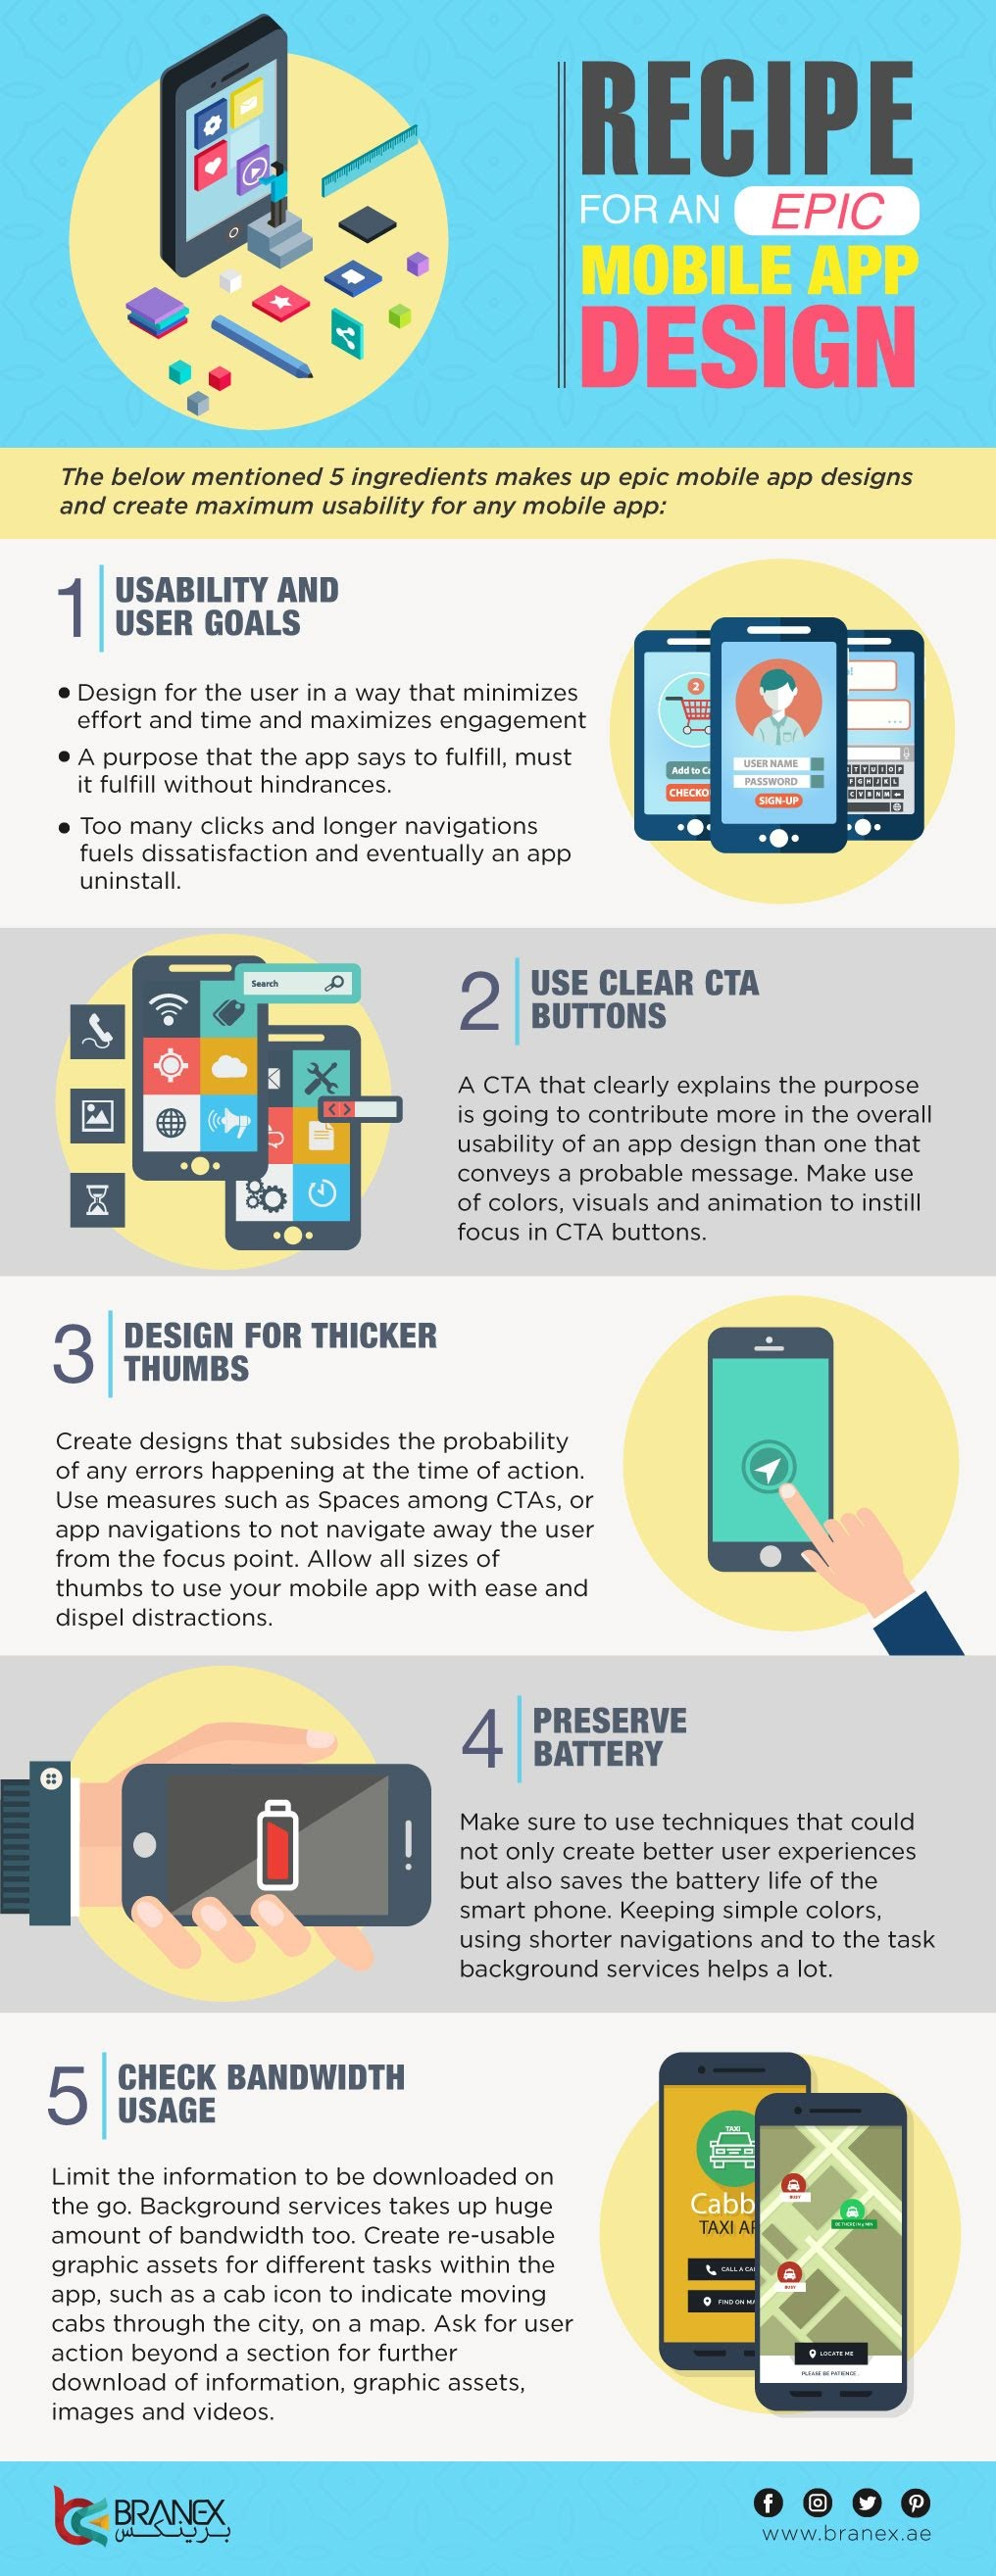 Recipe for an Epic Mobile App Design #infographic